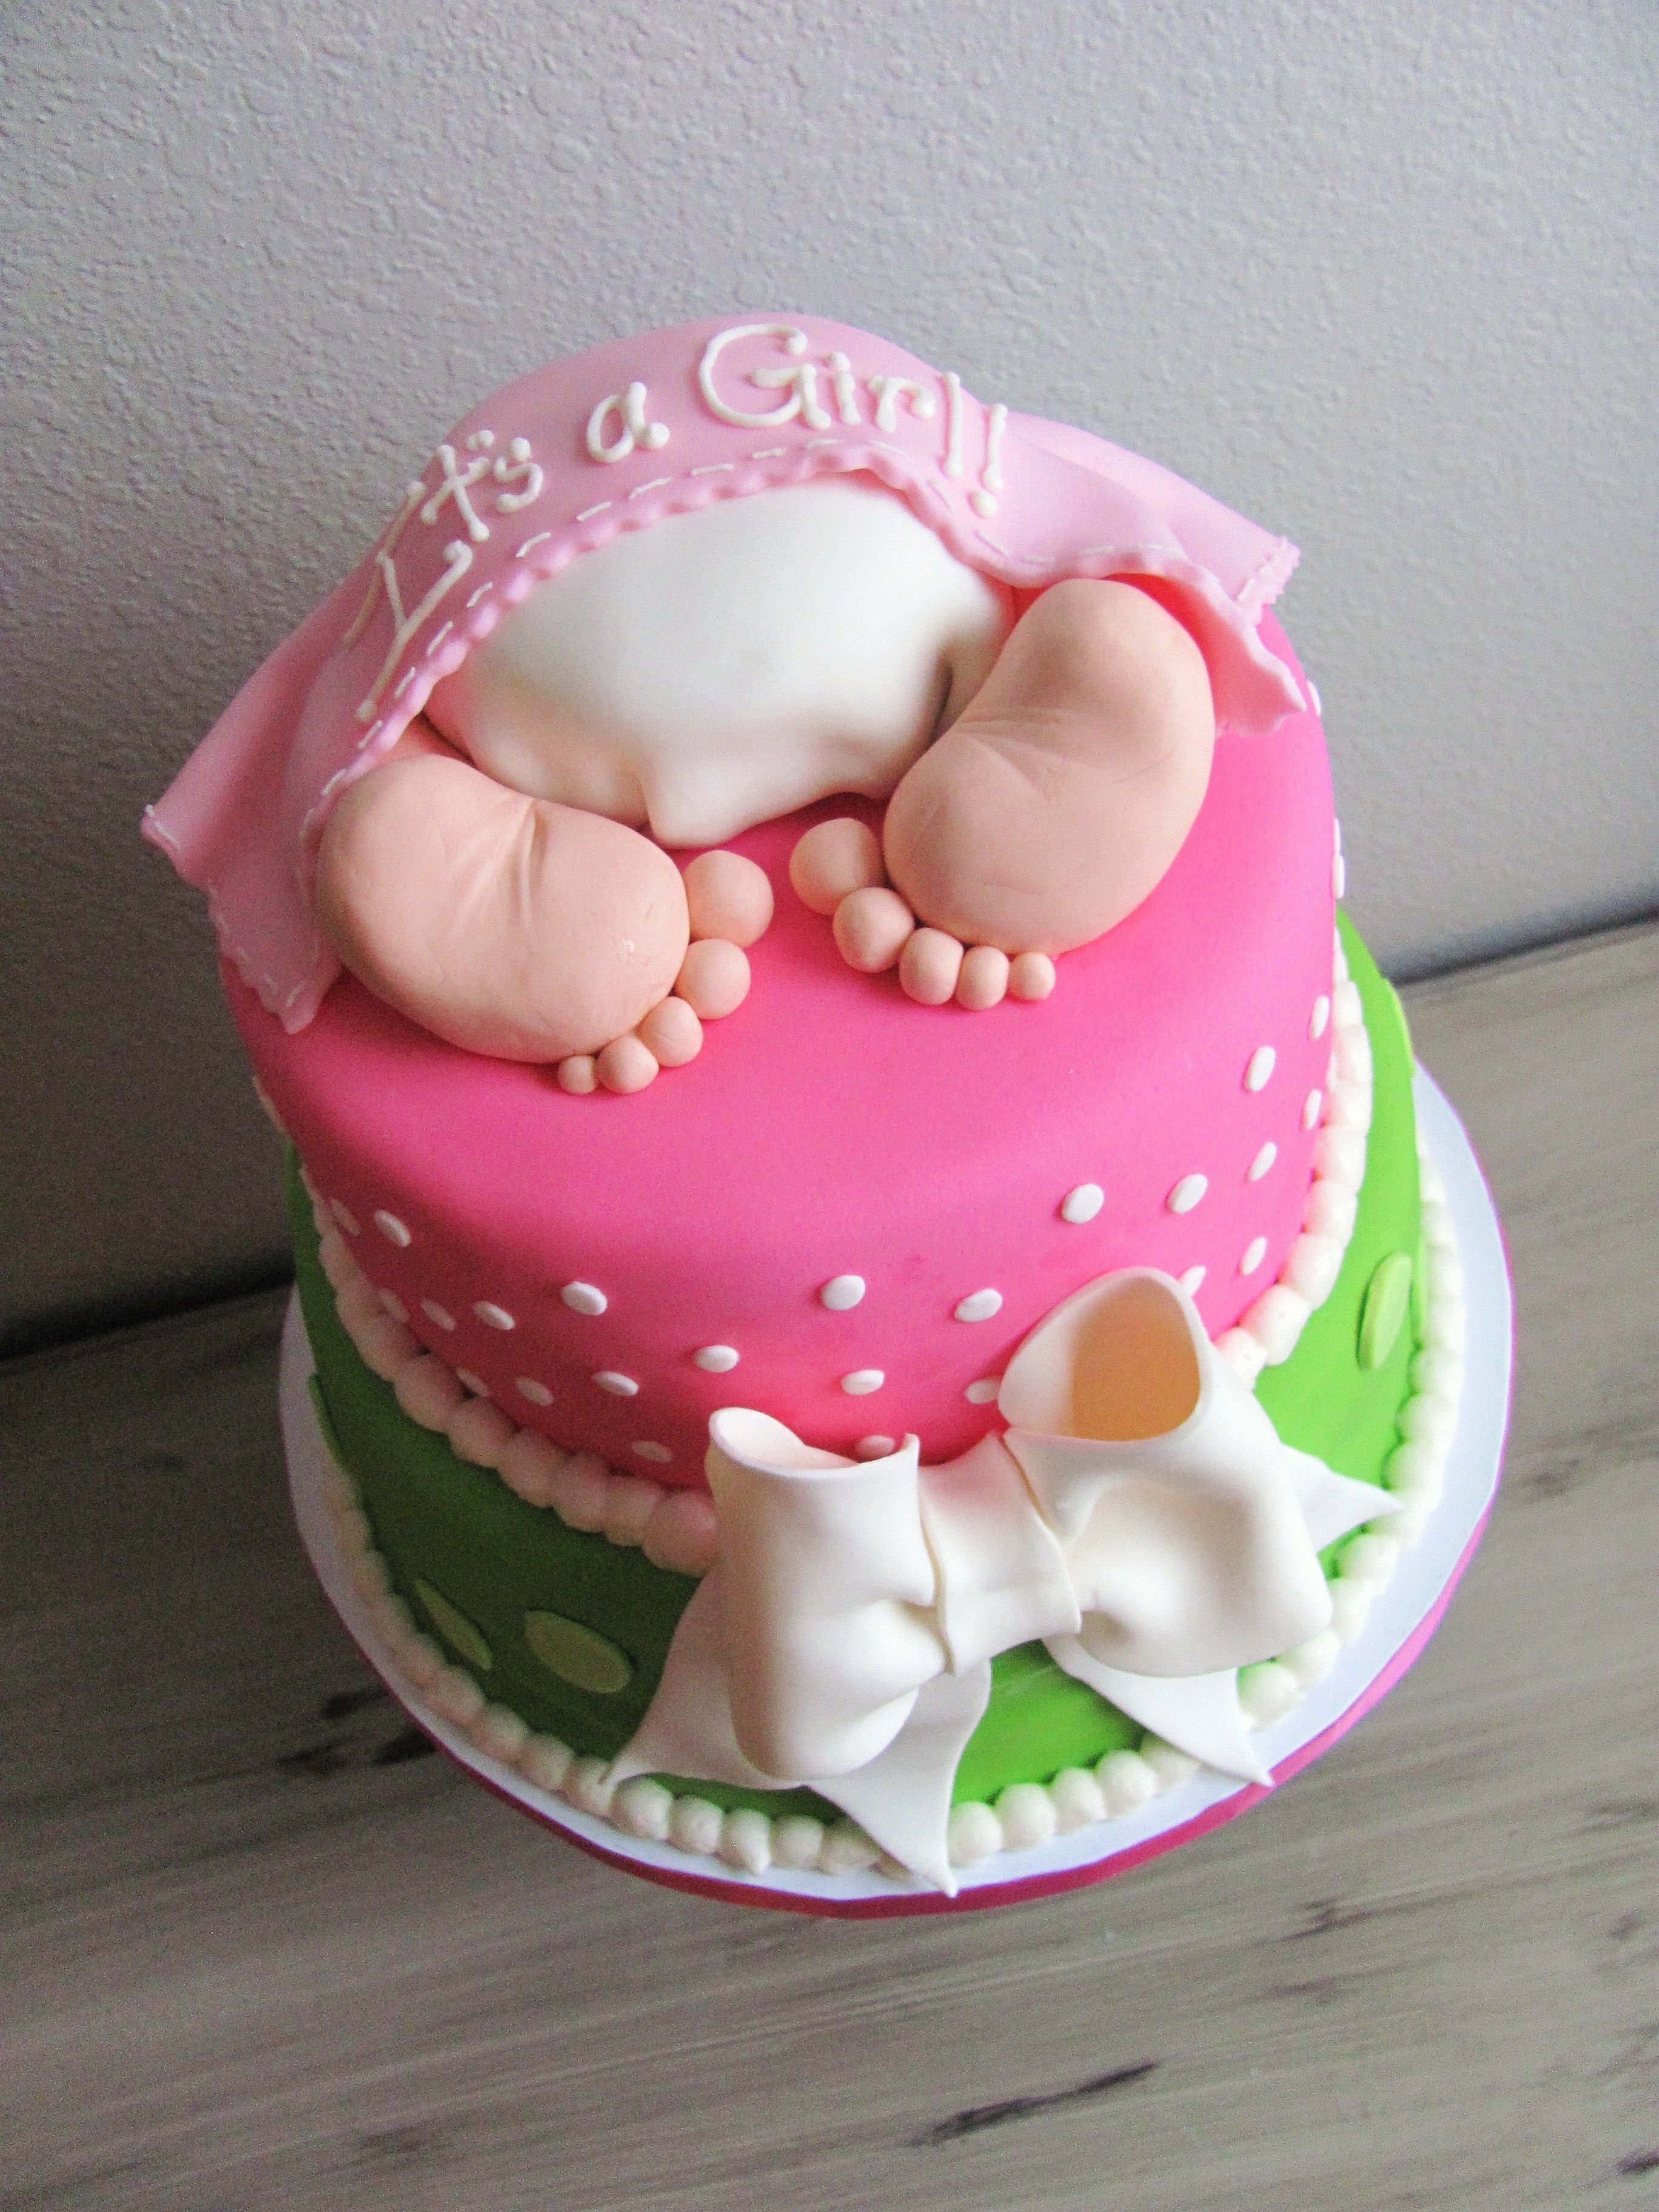 10 Beautiful Girl Baby Shower Cake Ideas baby shower cakes for girlpartybabyshower partybabyshower ideas 3